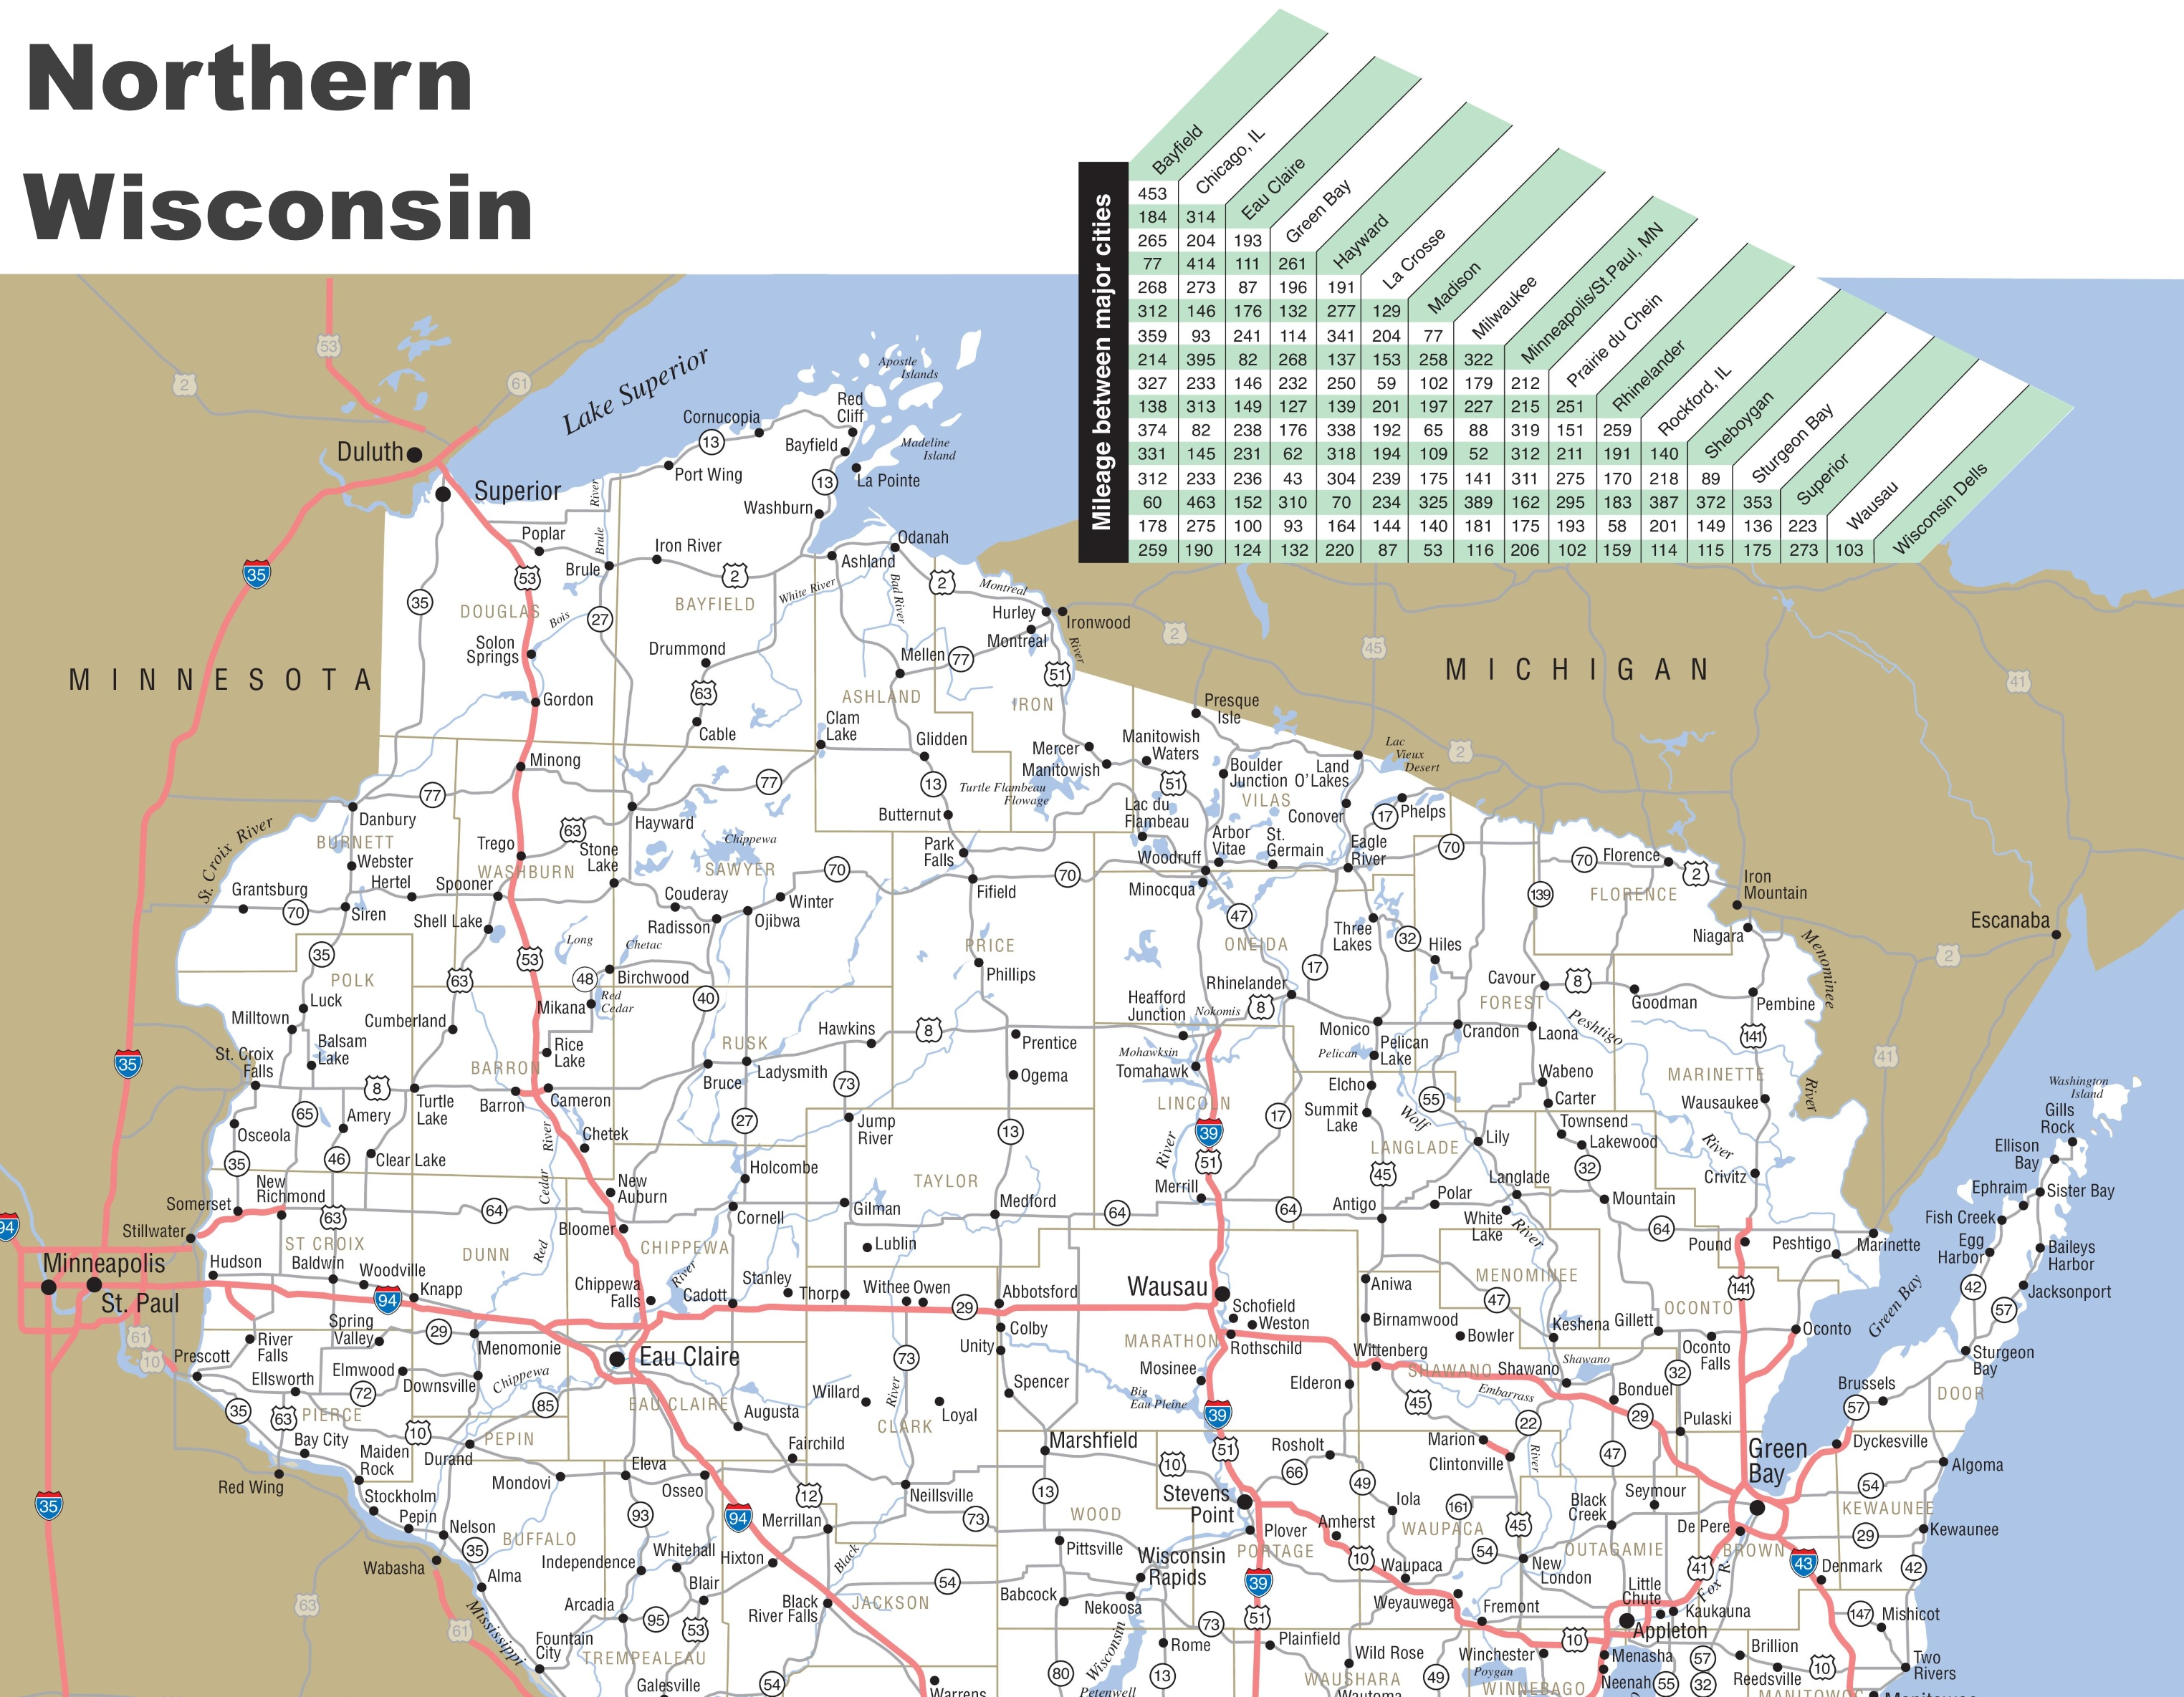 Map of Northern Wisconsin